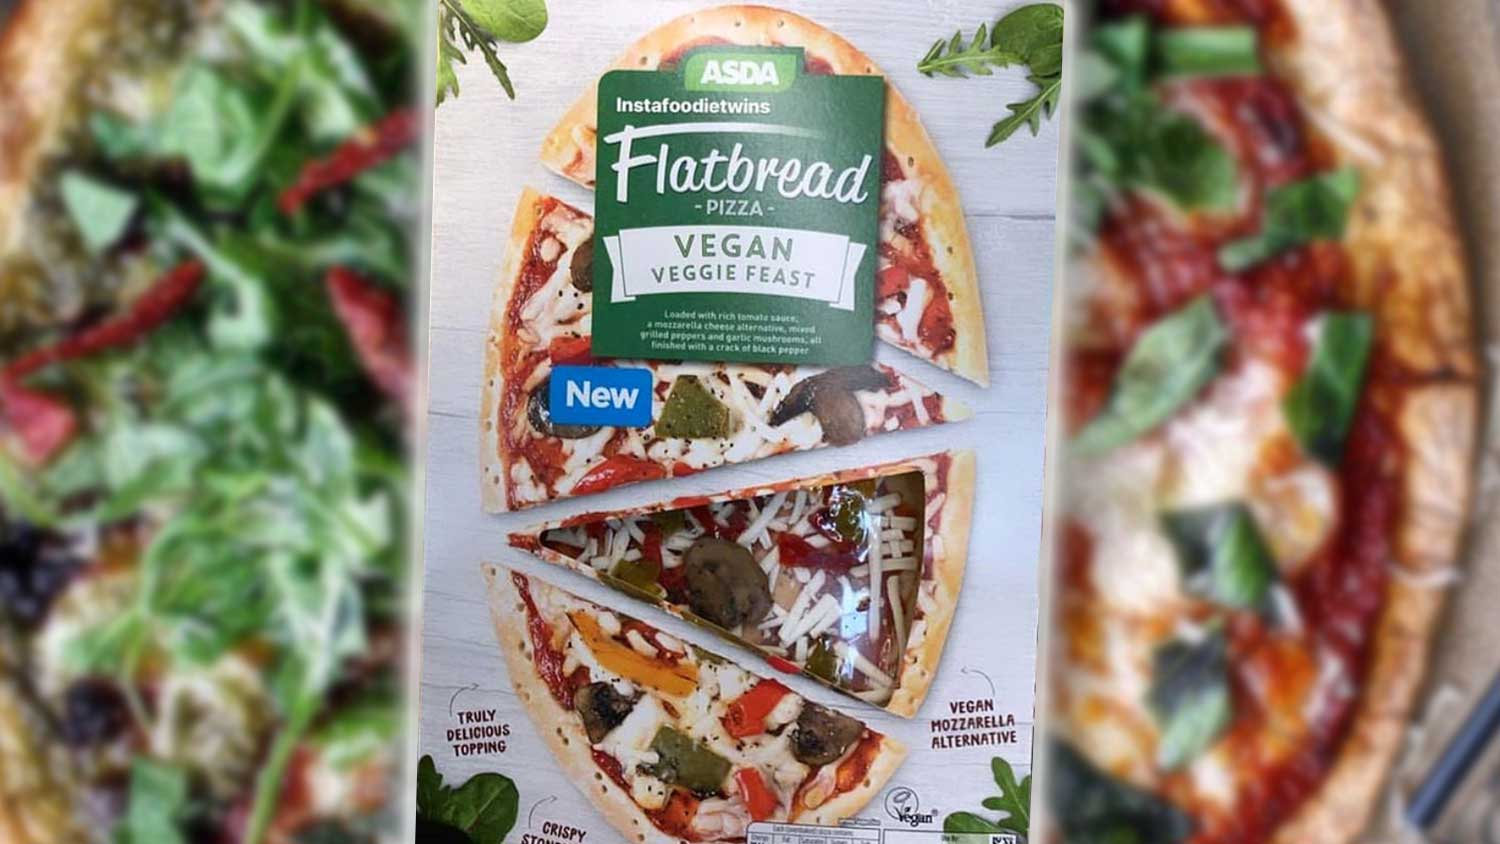 Cheesy Vegan Veggie Feast Pizzas Now at Asda